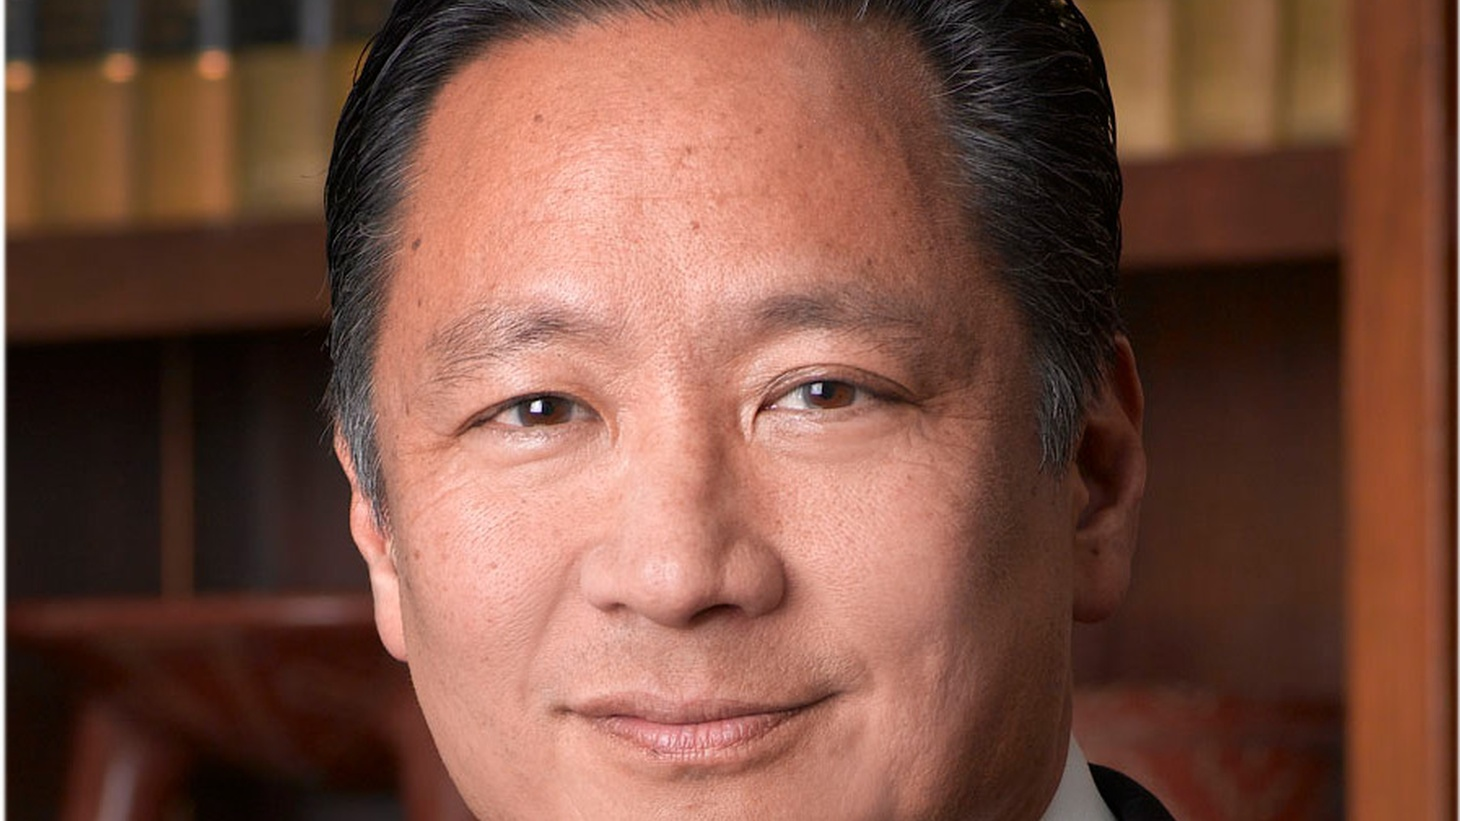 California's only elected public defender Jeff Adachi, of the City and County of San Francisco, discusses why he opposes California's new bail reform bill, his views on preventive detention, immigration, and how the Japanese internment camps led…